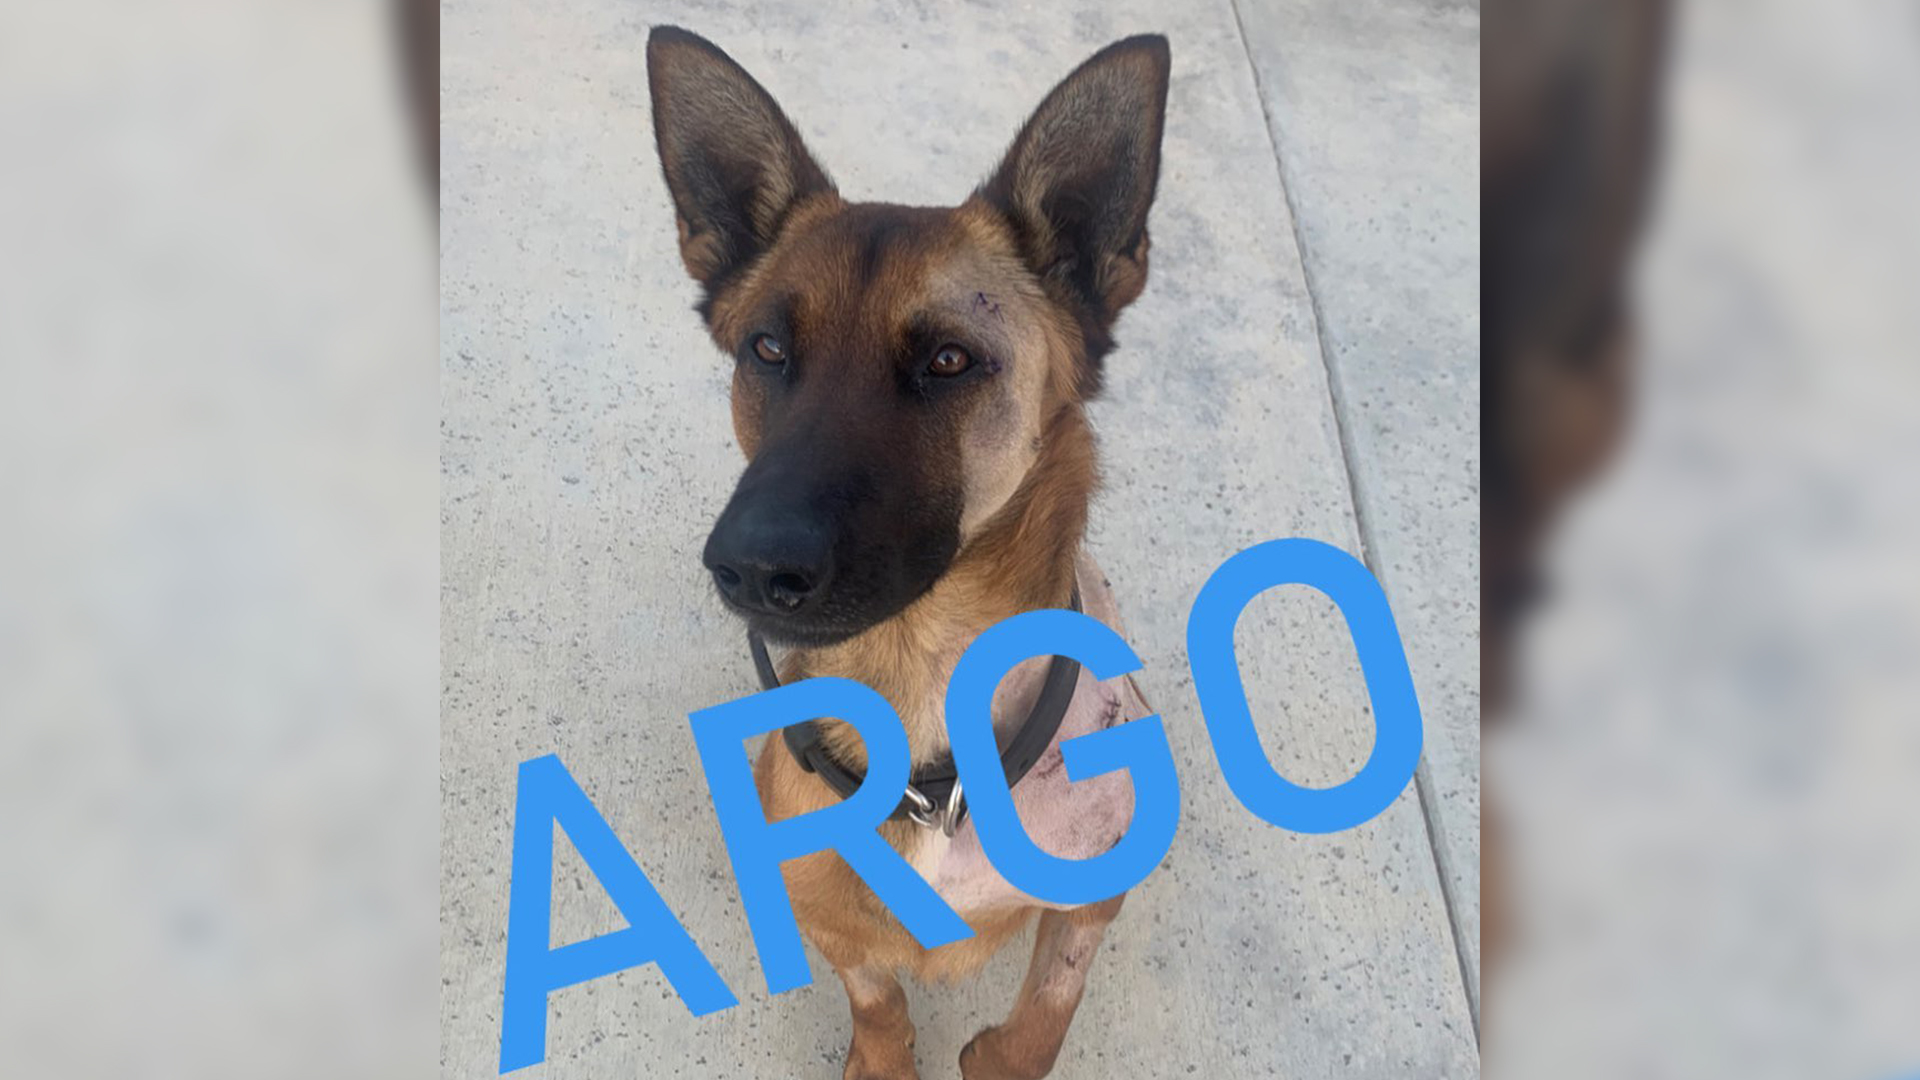 Police K9 Argo's recovery continues